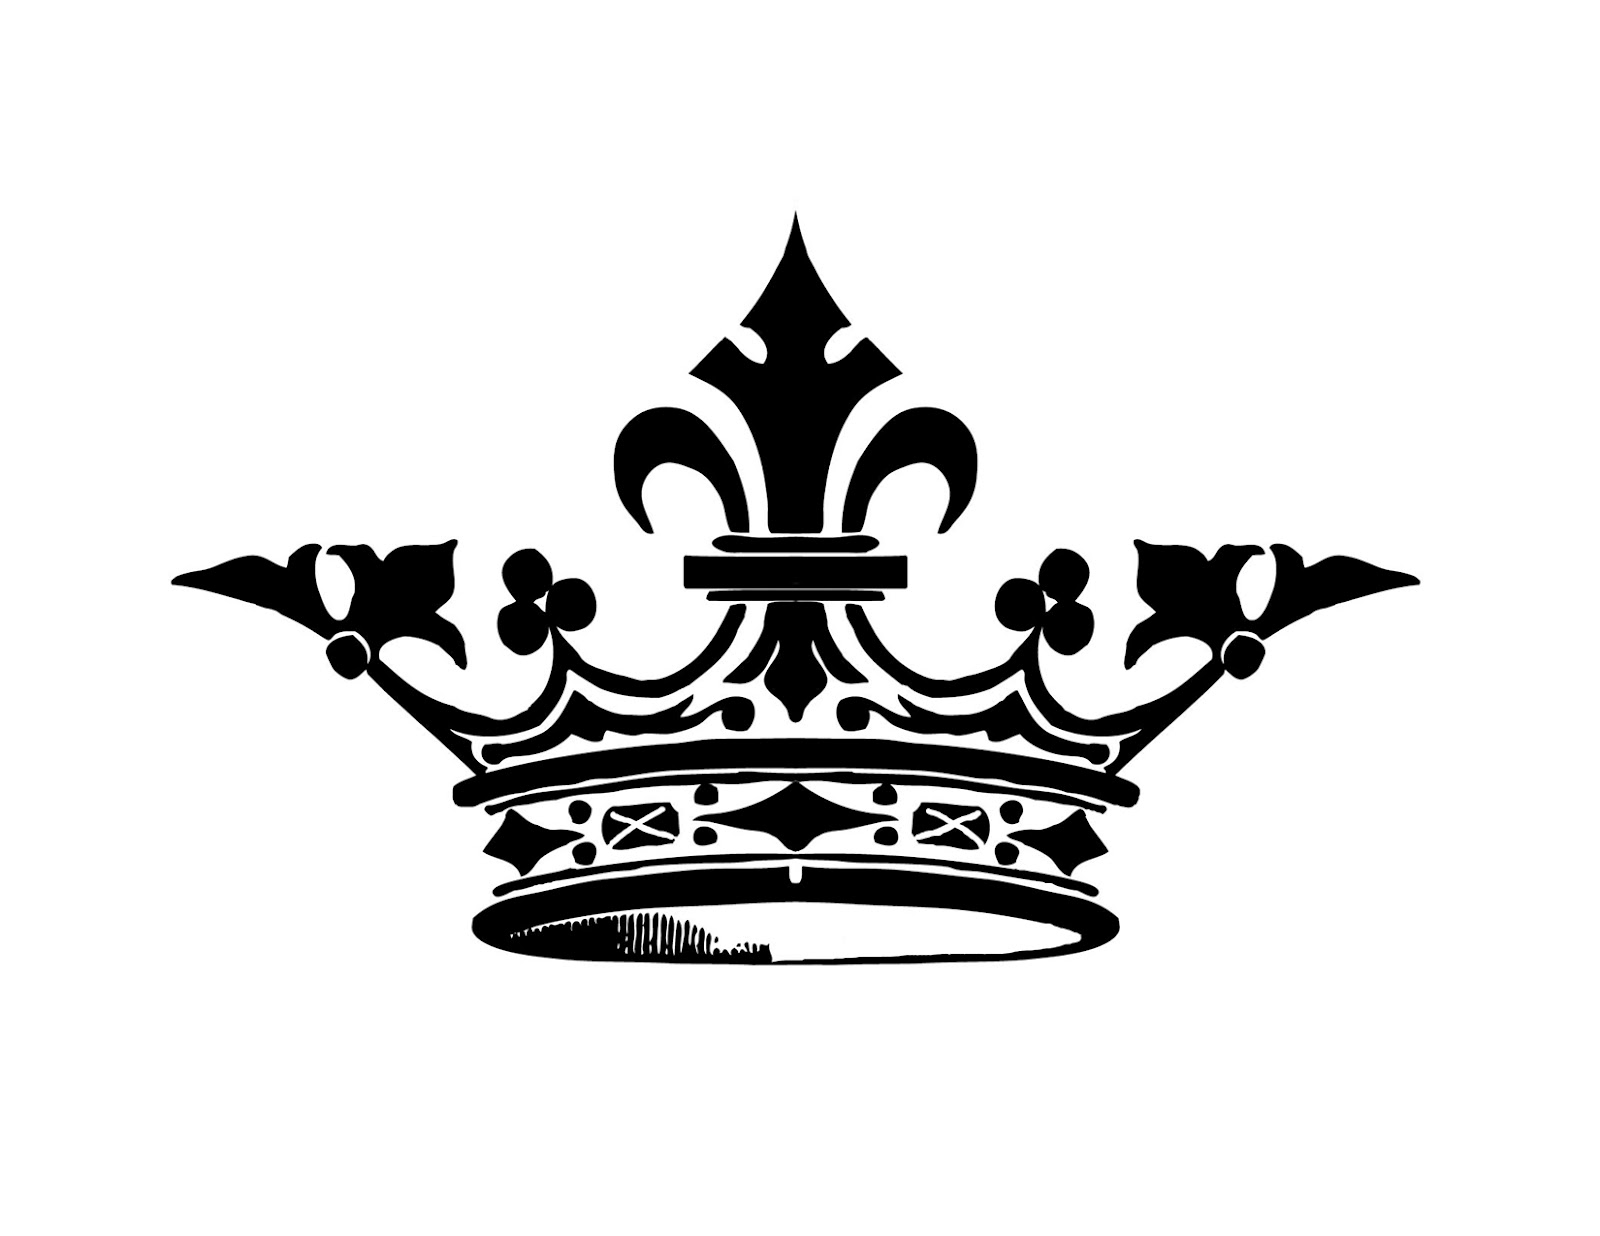 Crown Silhouette Graphicsfairysm   Free Images at Clker ...